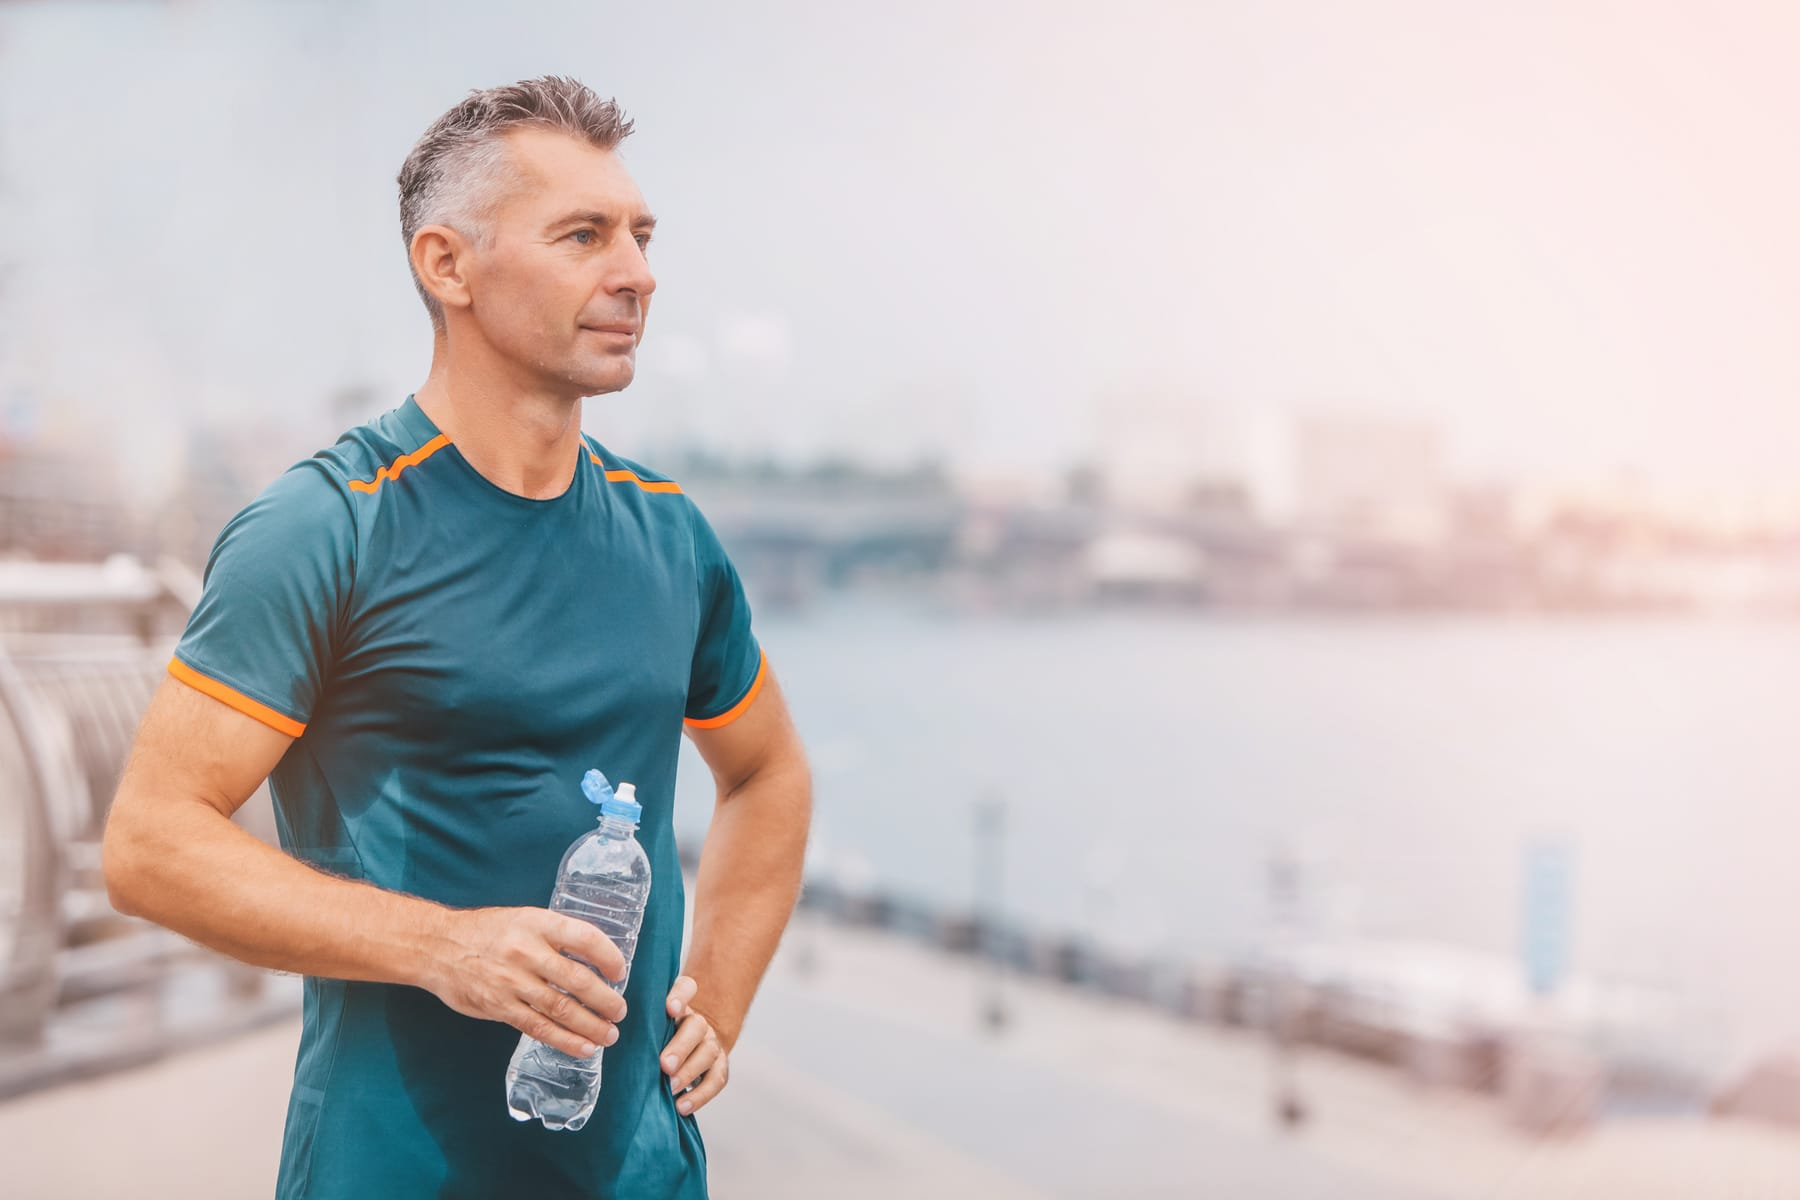 Portrait of healthy athletic middle aged man